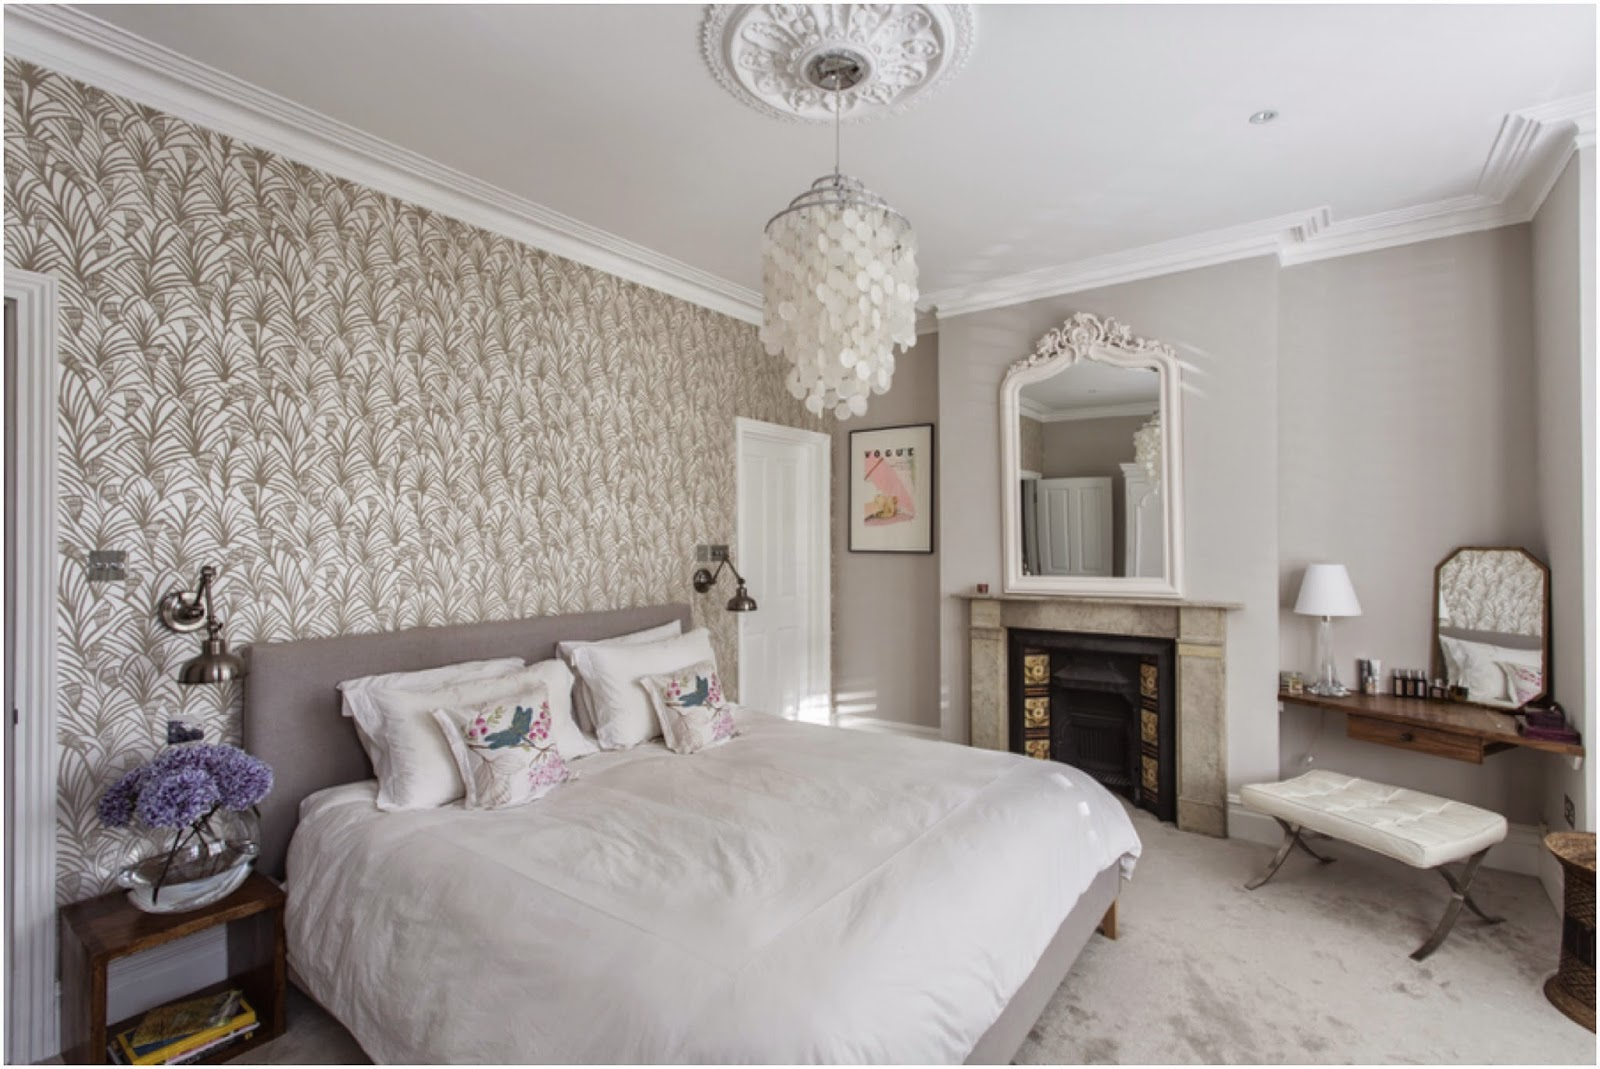 Master bedroom victorian terrace in london laura butler for Bedroom ideas victorian terrace